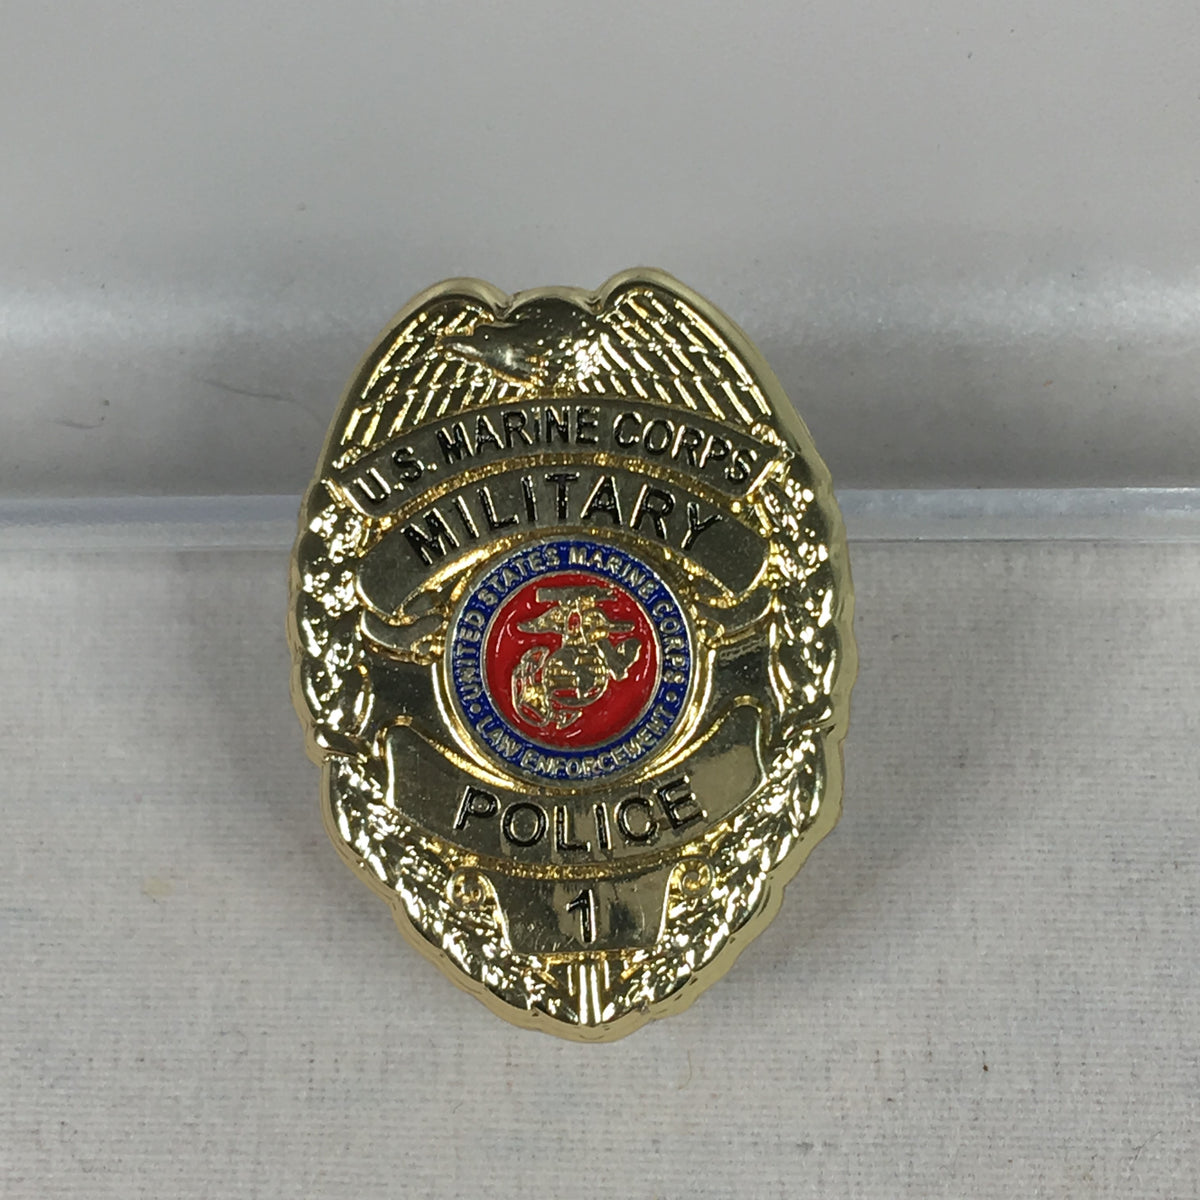 U.S. Marine Corps Police Shield Pin